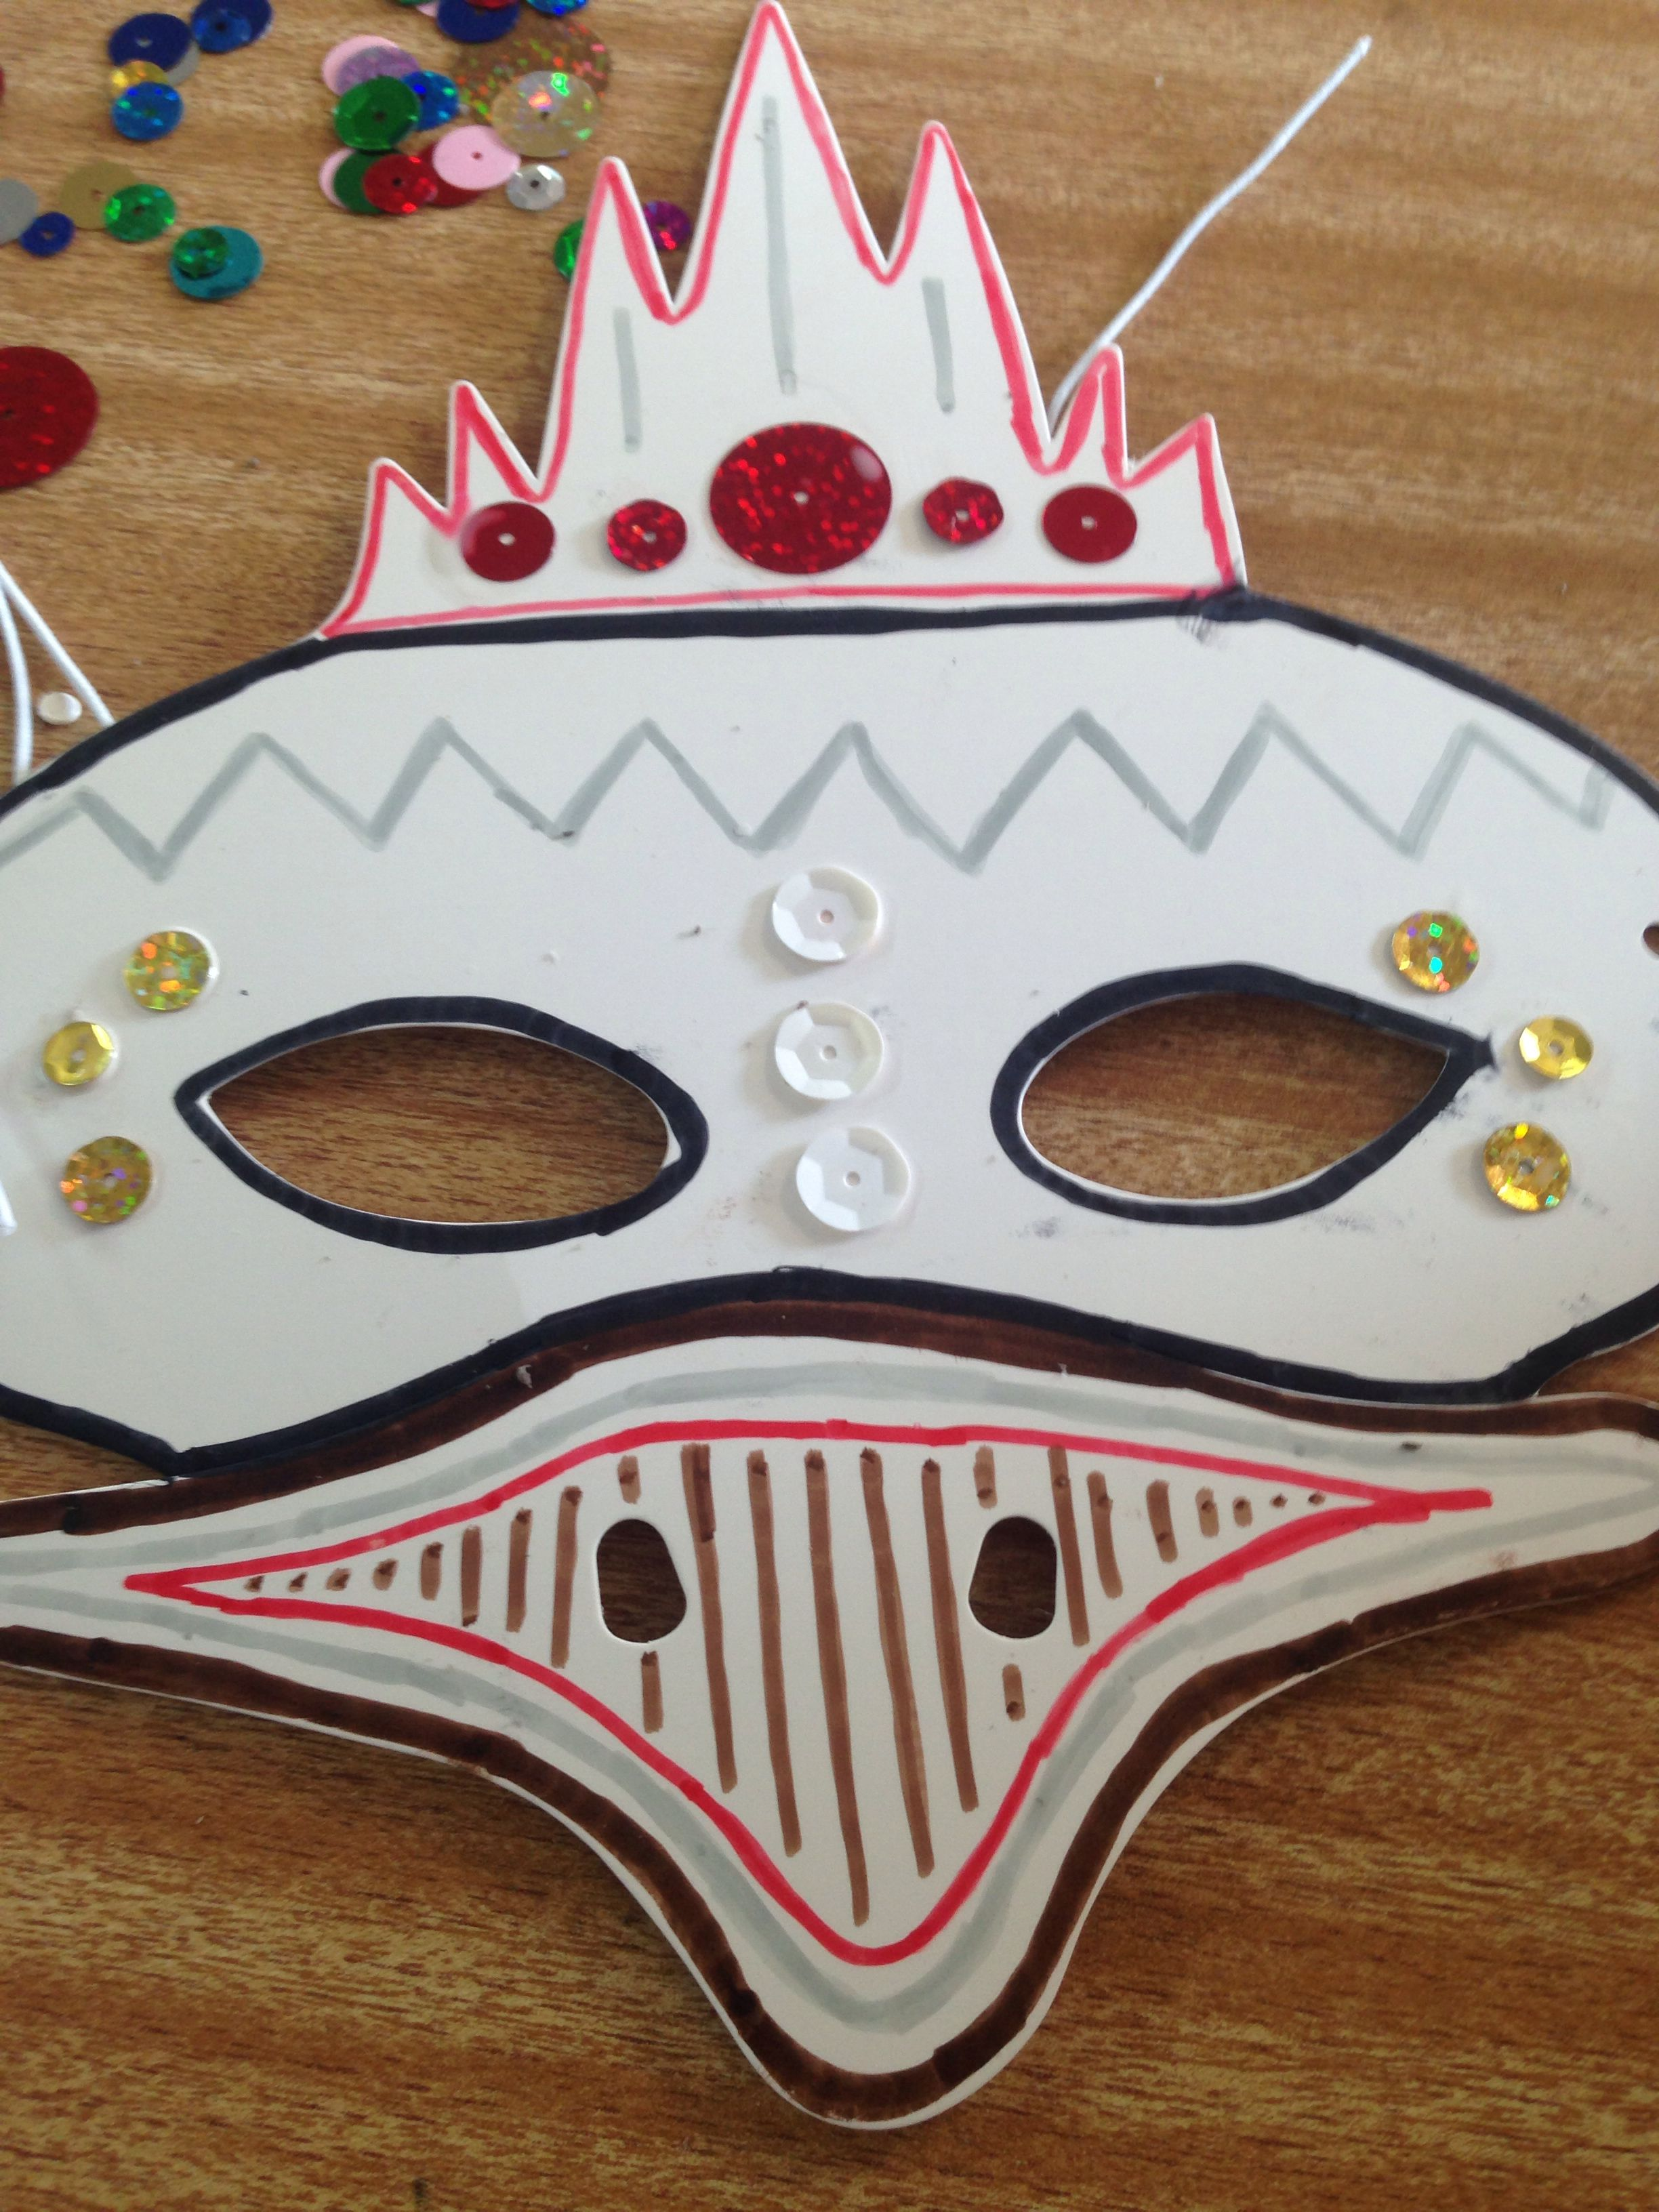 Australian animal face masks decorated with textas and sequins ...